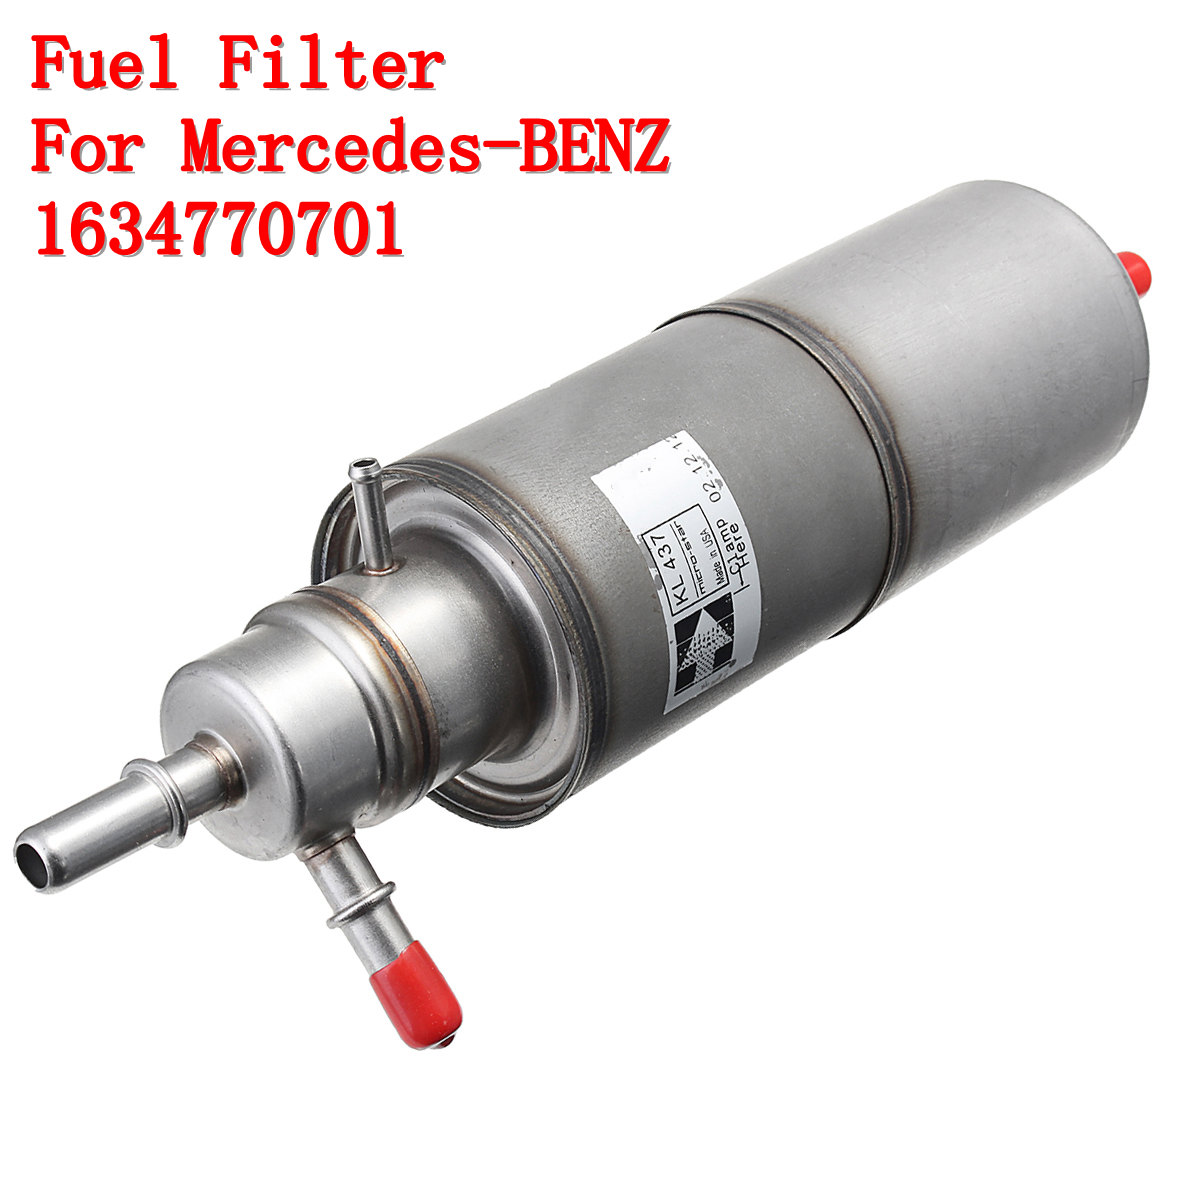 Buy Regulator Fuel Filter And Get Free Shipping On 2000 Mercedes E320